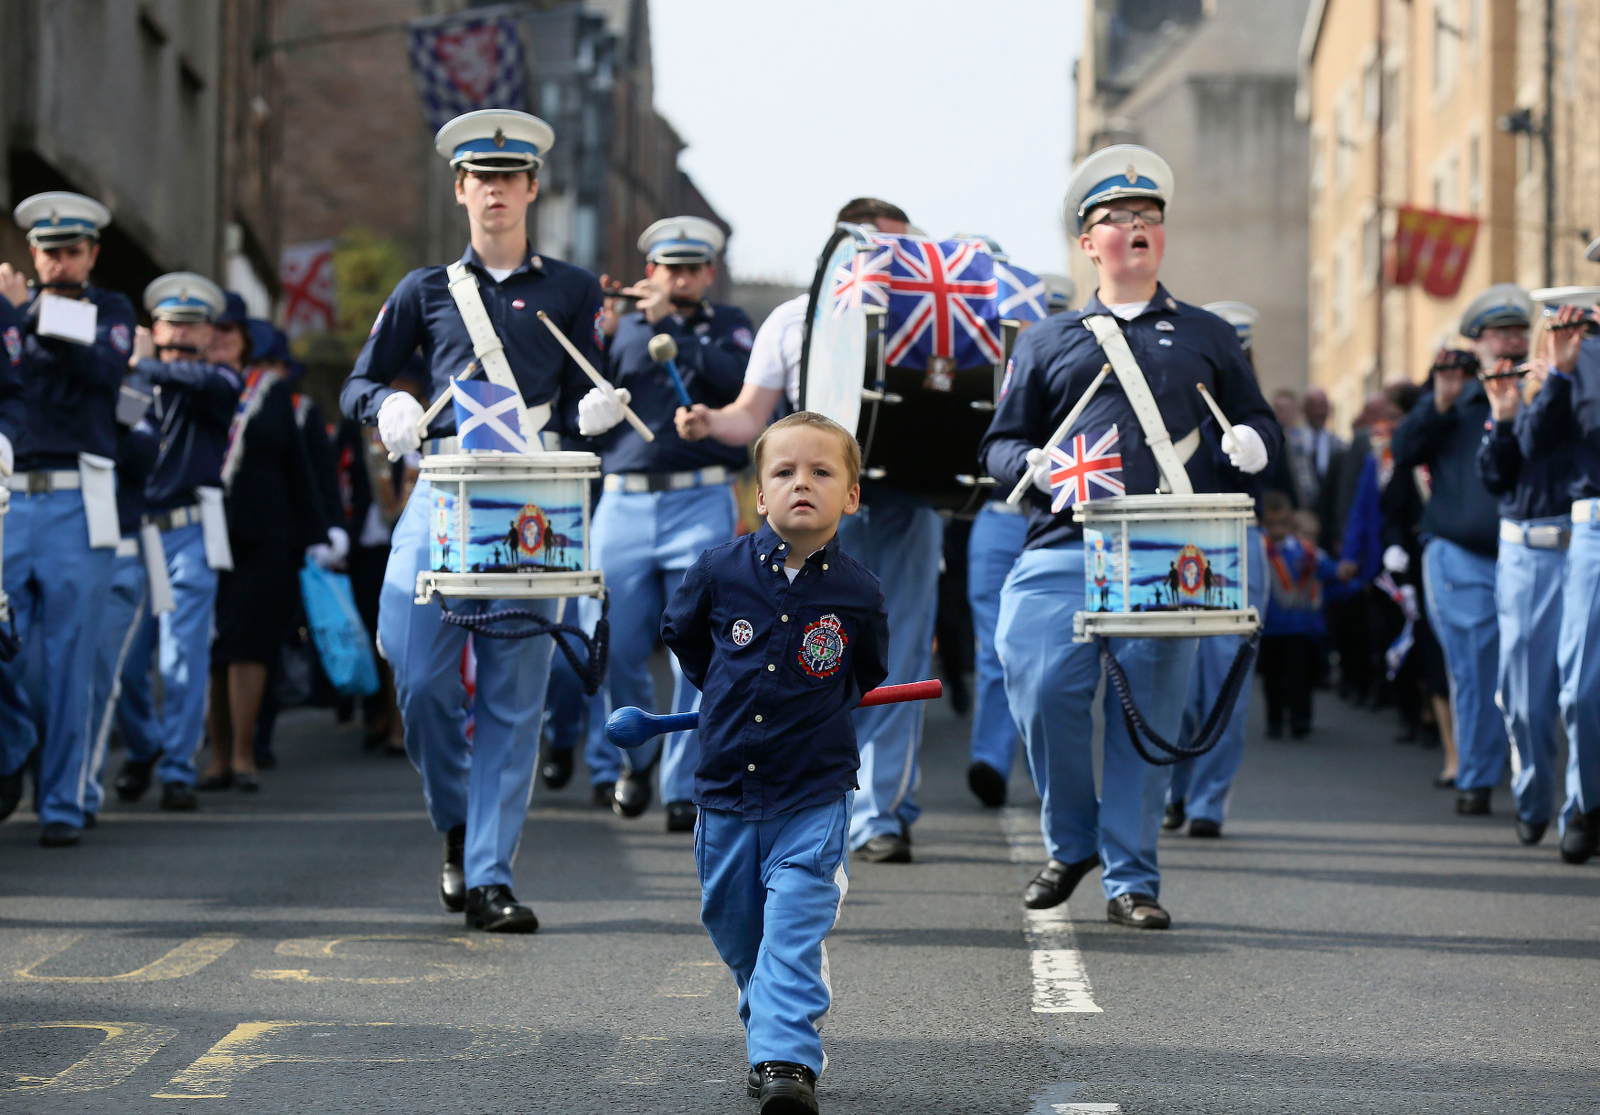 Edinburgh Orange Order Parade